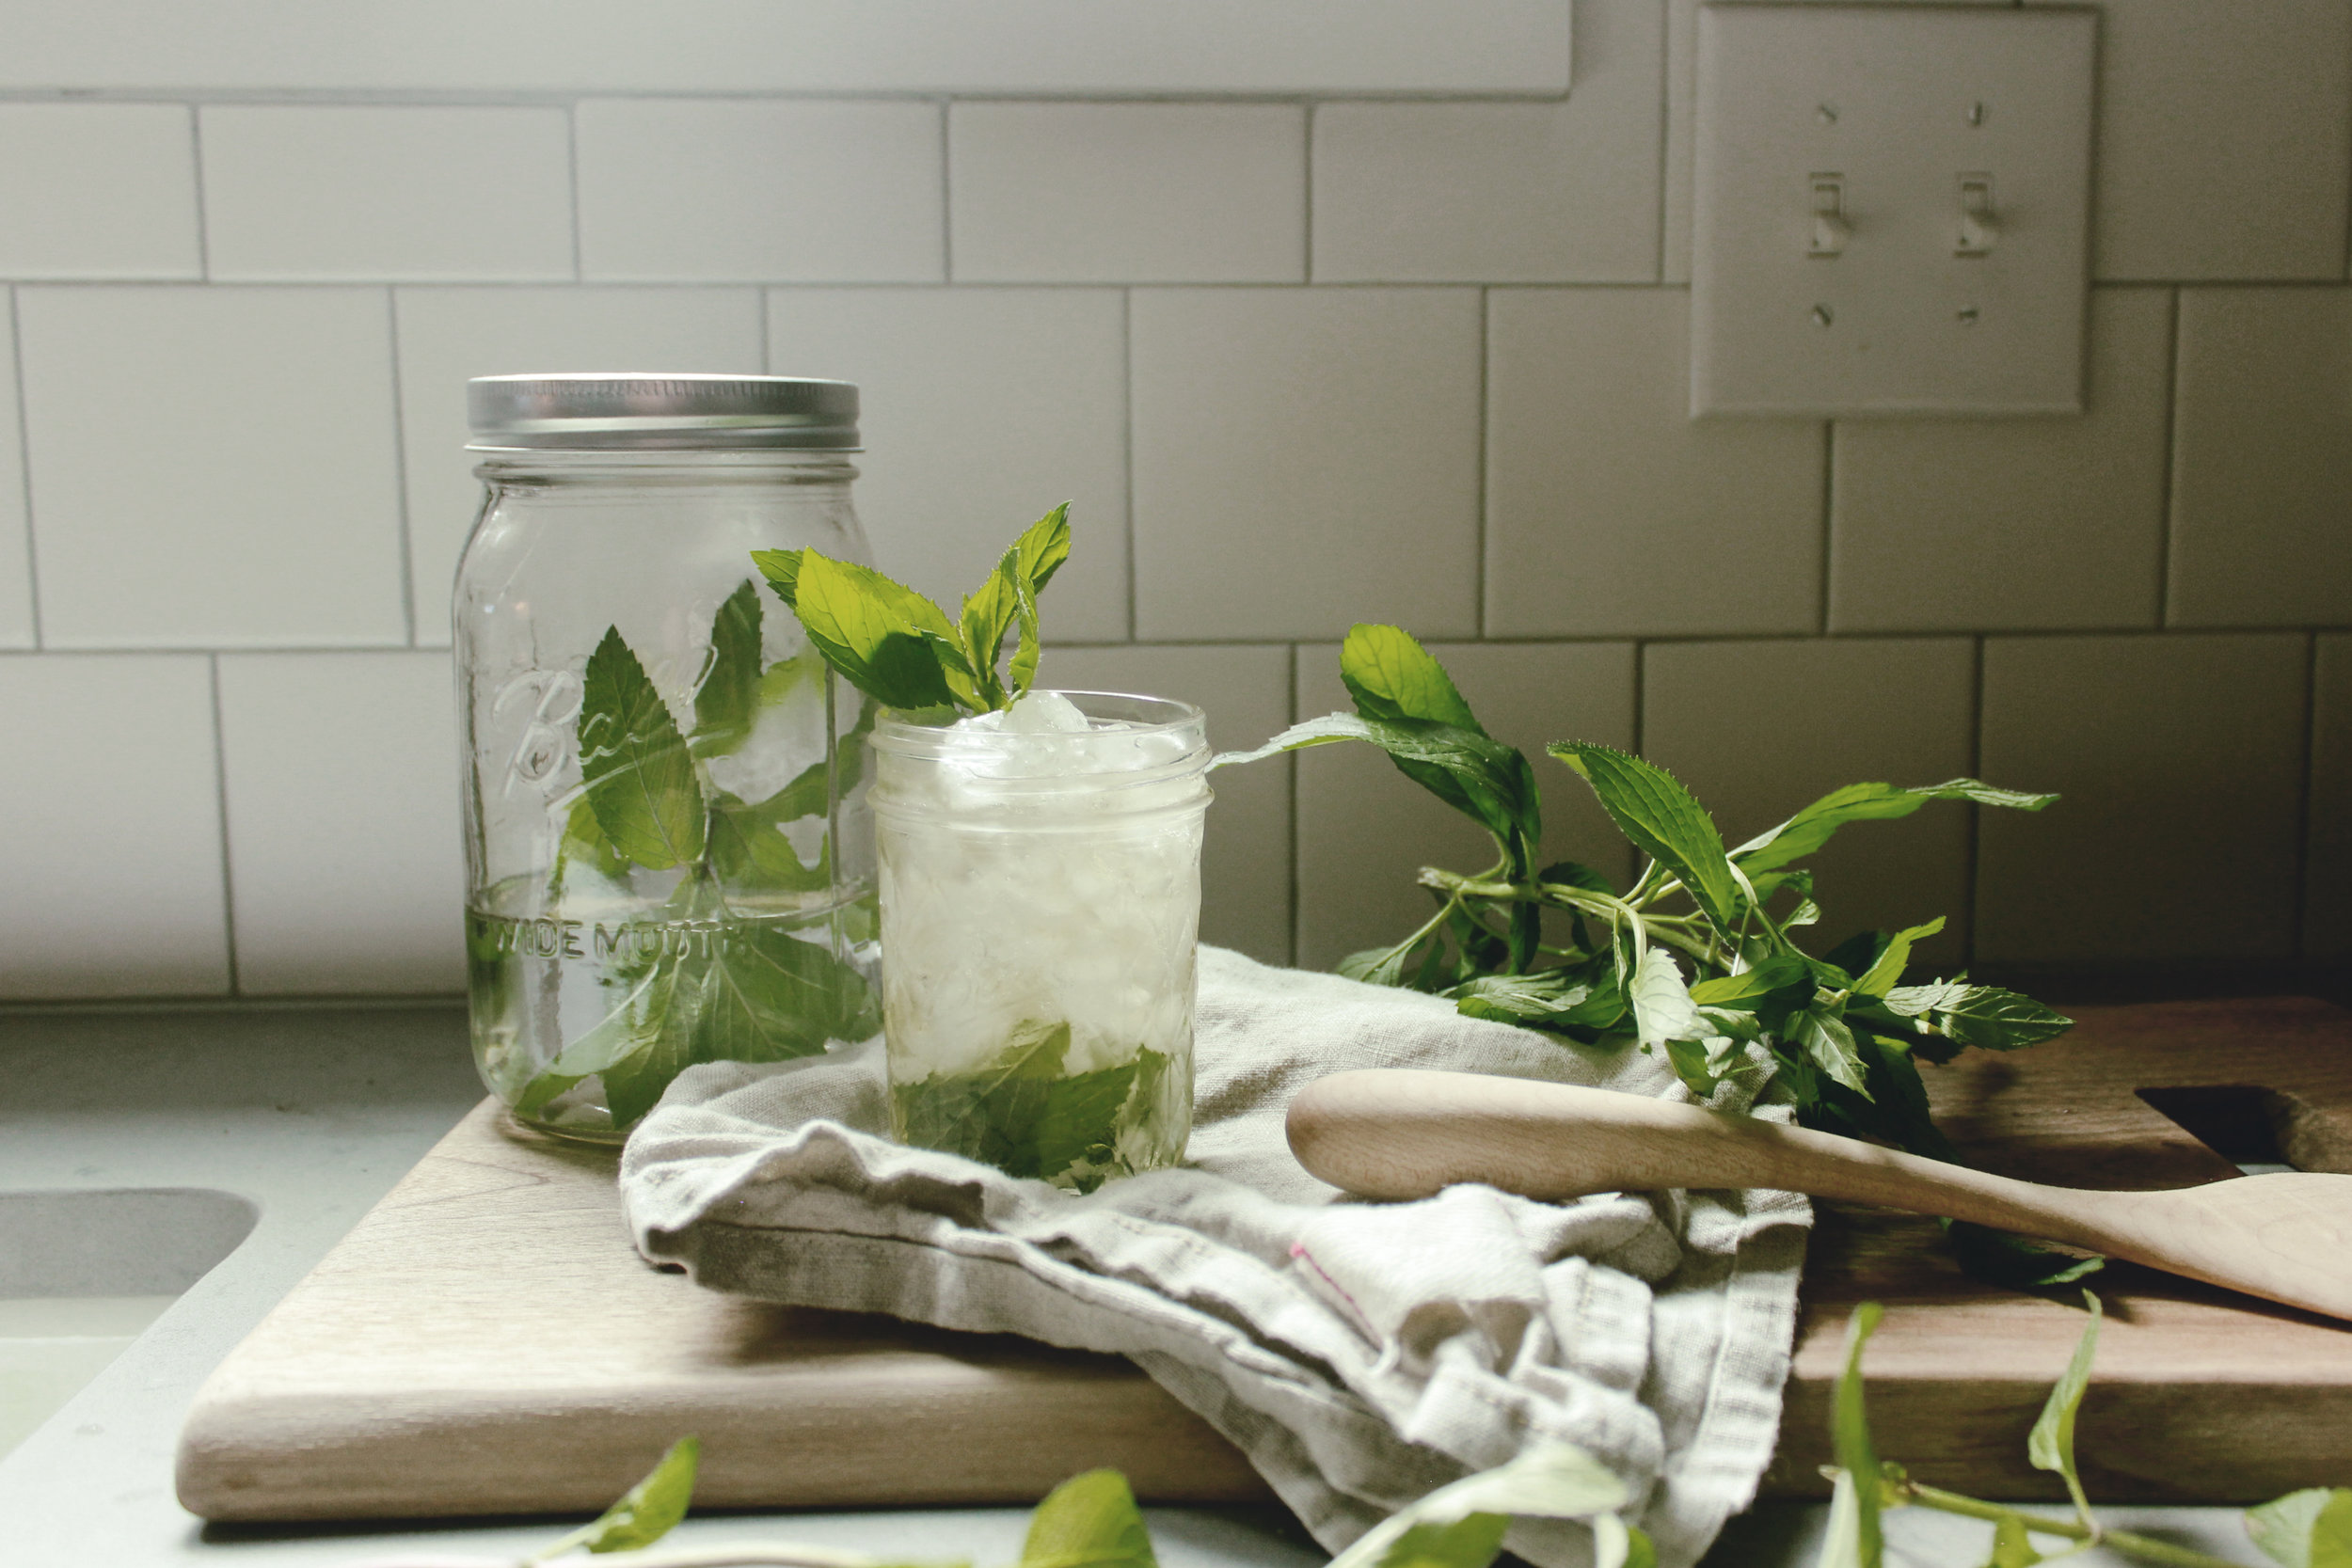 herb garden mint julep jars southern cocktail recipe  / heirloomed